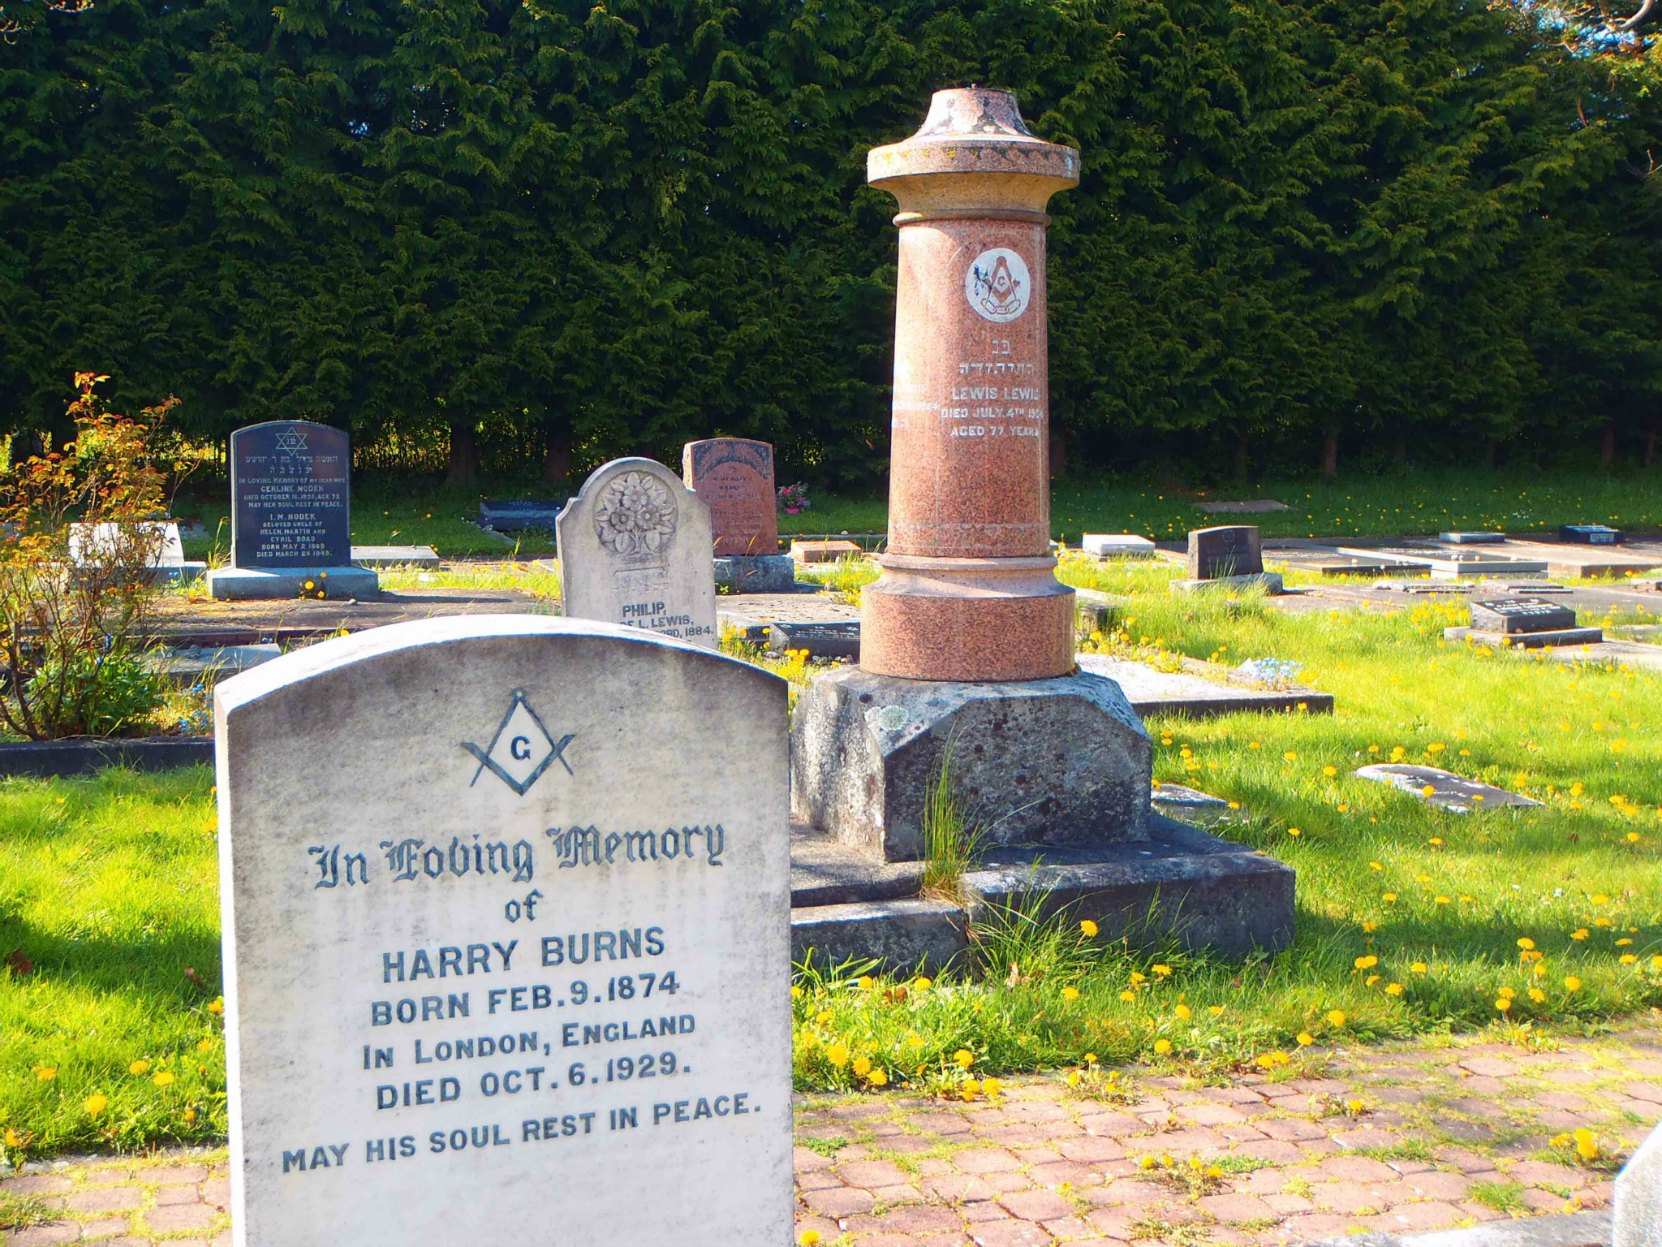 The graves of Harry Burns and Lewis Lewis in Victoria Jewish Cemetery both display the Masonic Square and Compasses